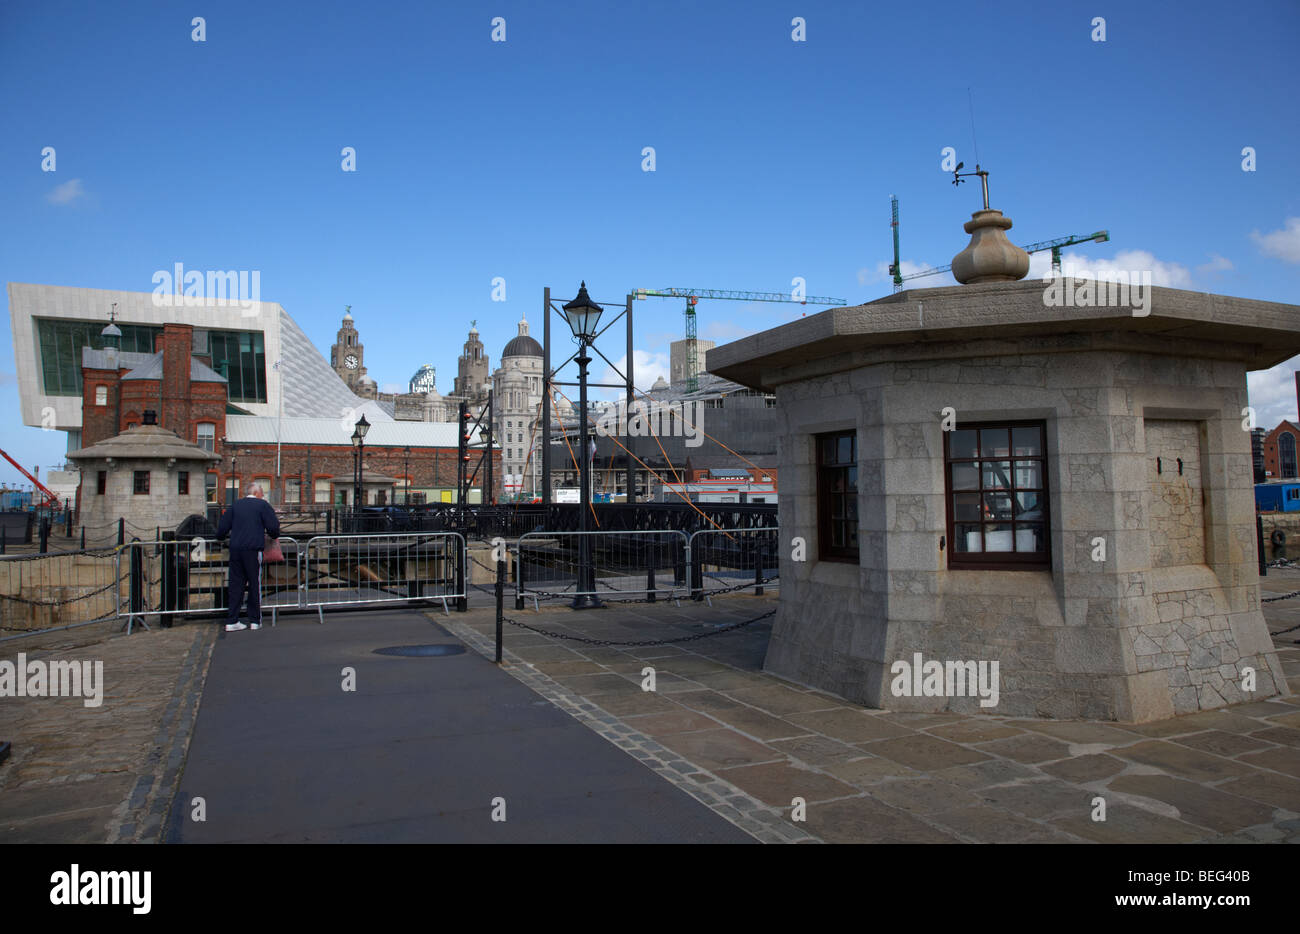 tourist at the lock gates in the refurbished area at the albert dock liverpool merseyside england uk - Stock Image